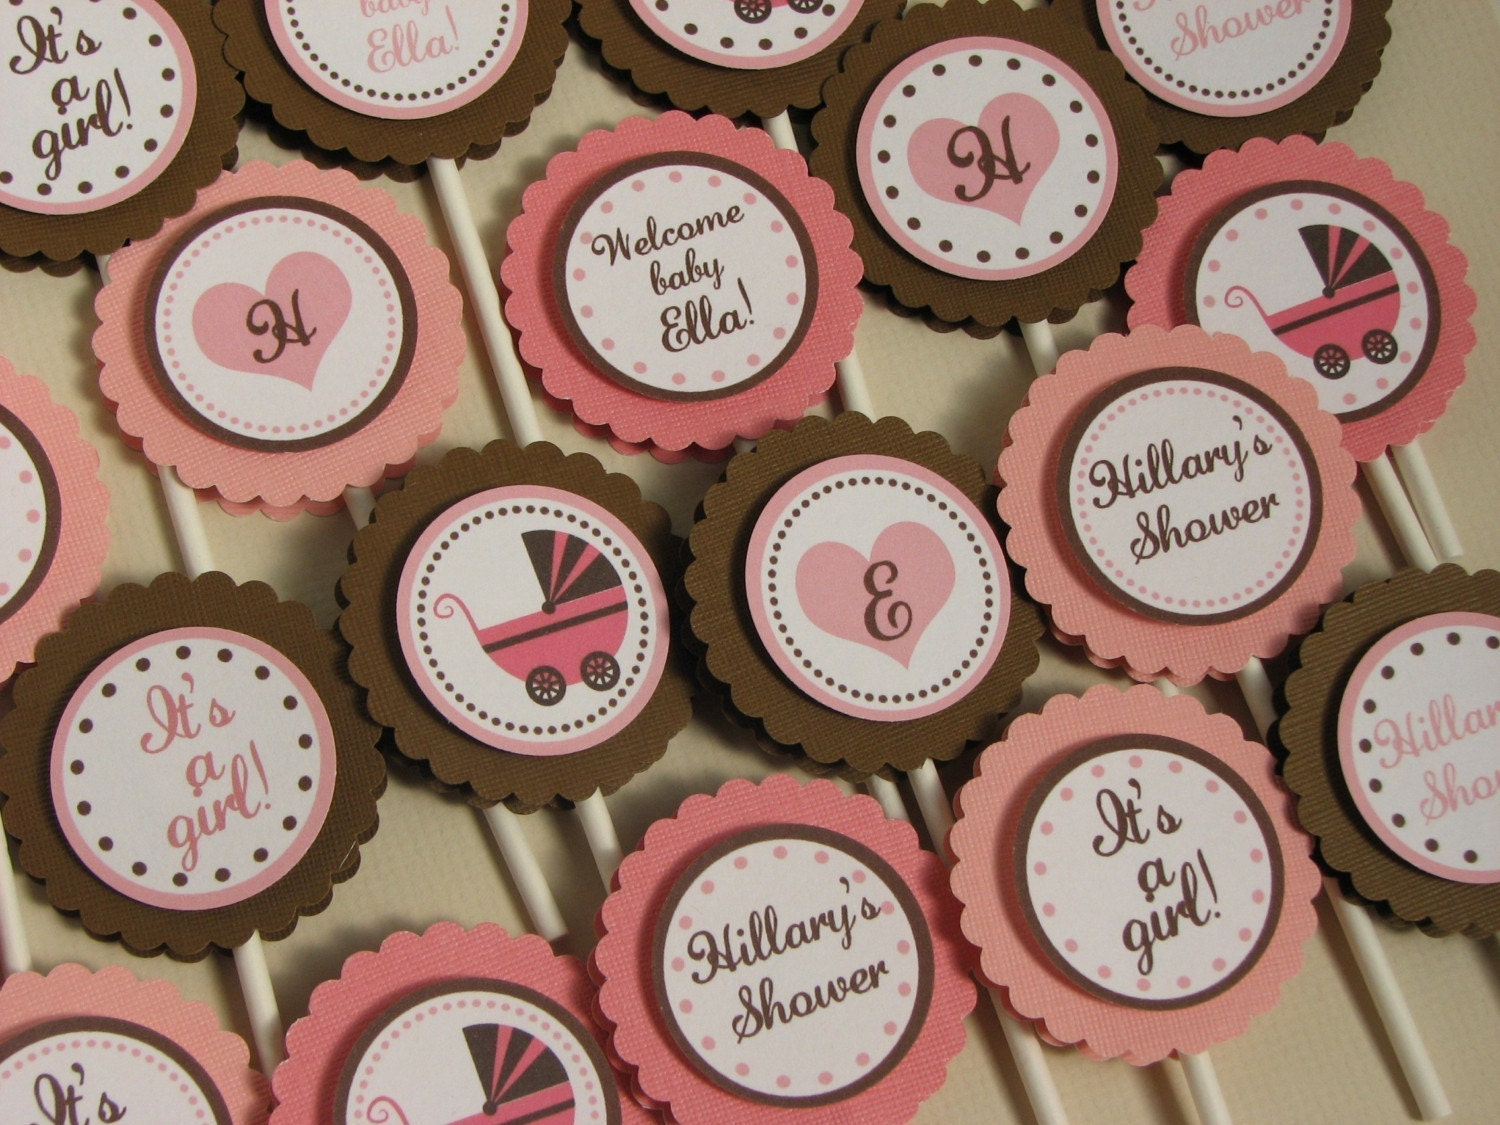 Cake Toppers Baby Shower Etsy : It s a Girl Baby Shower Cupcake Toppers Pink by ...